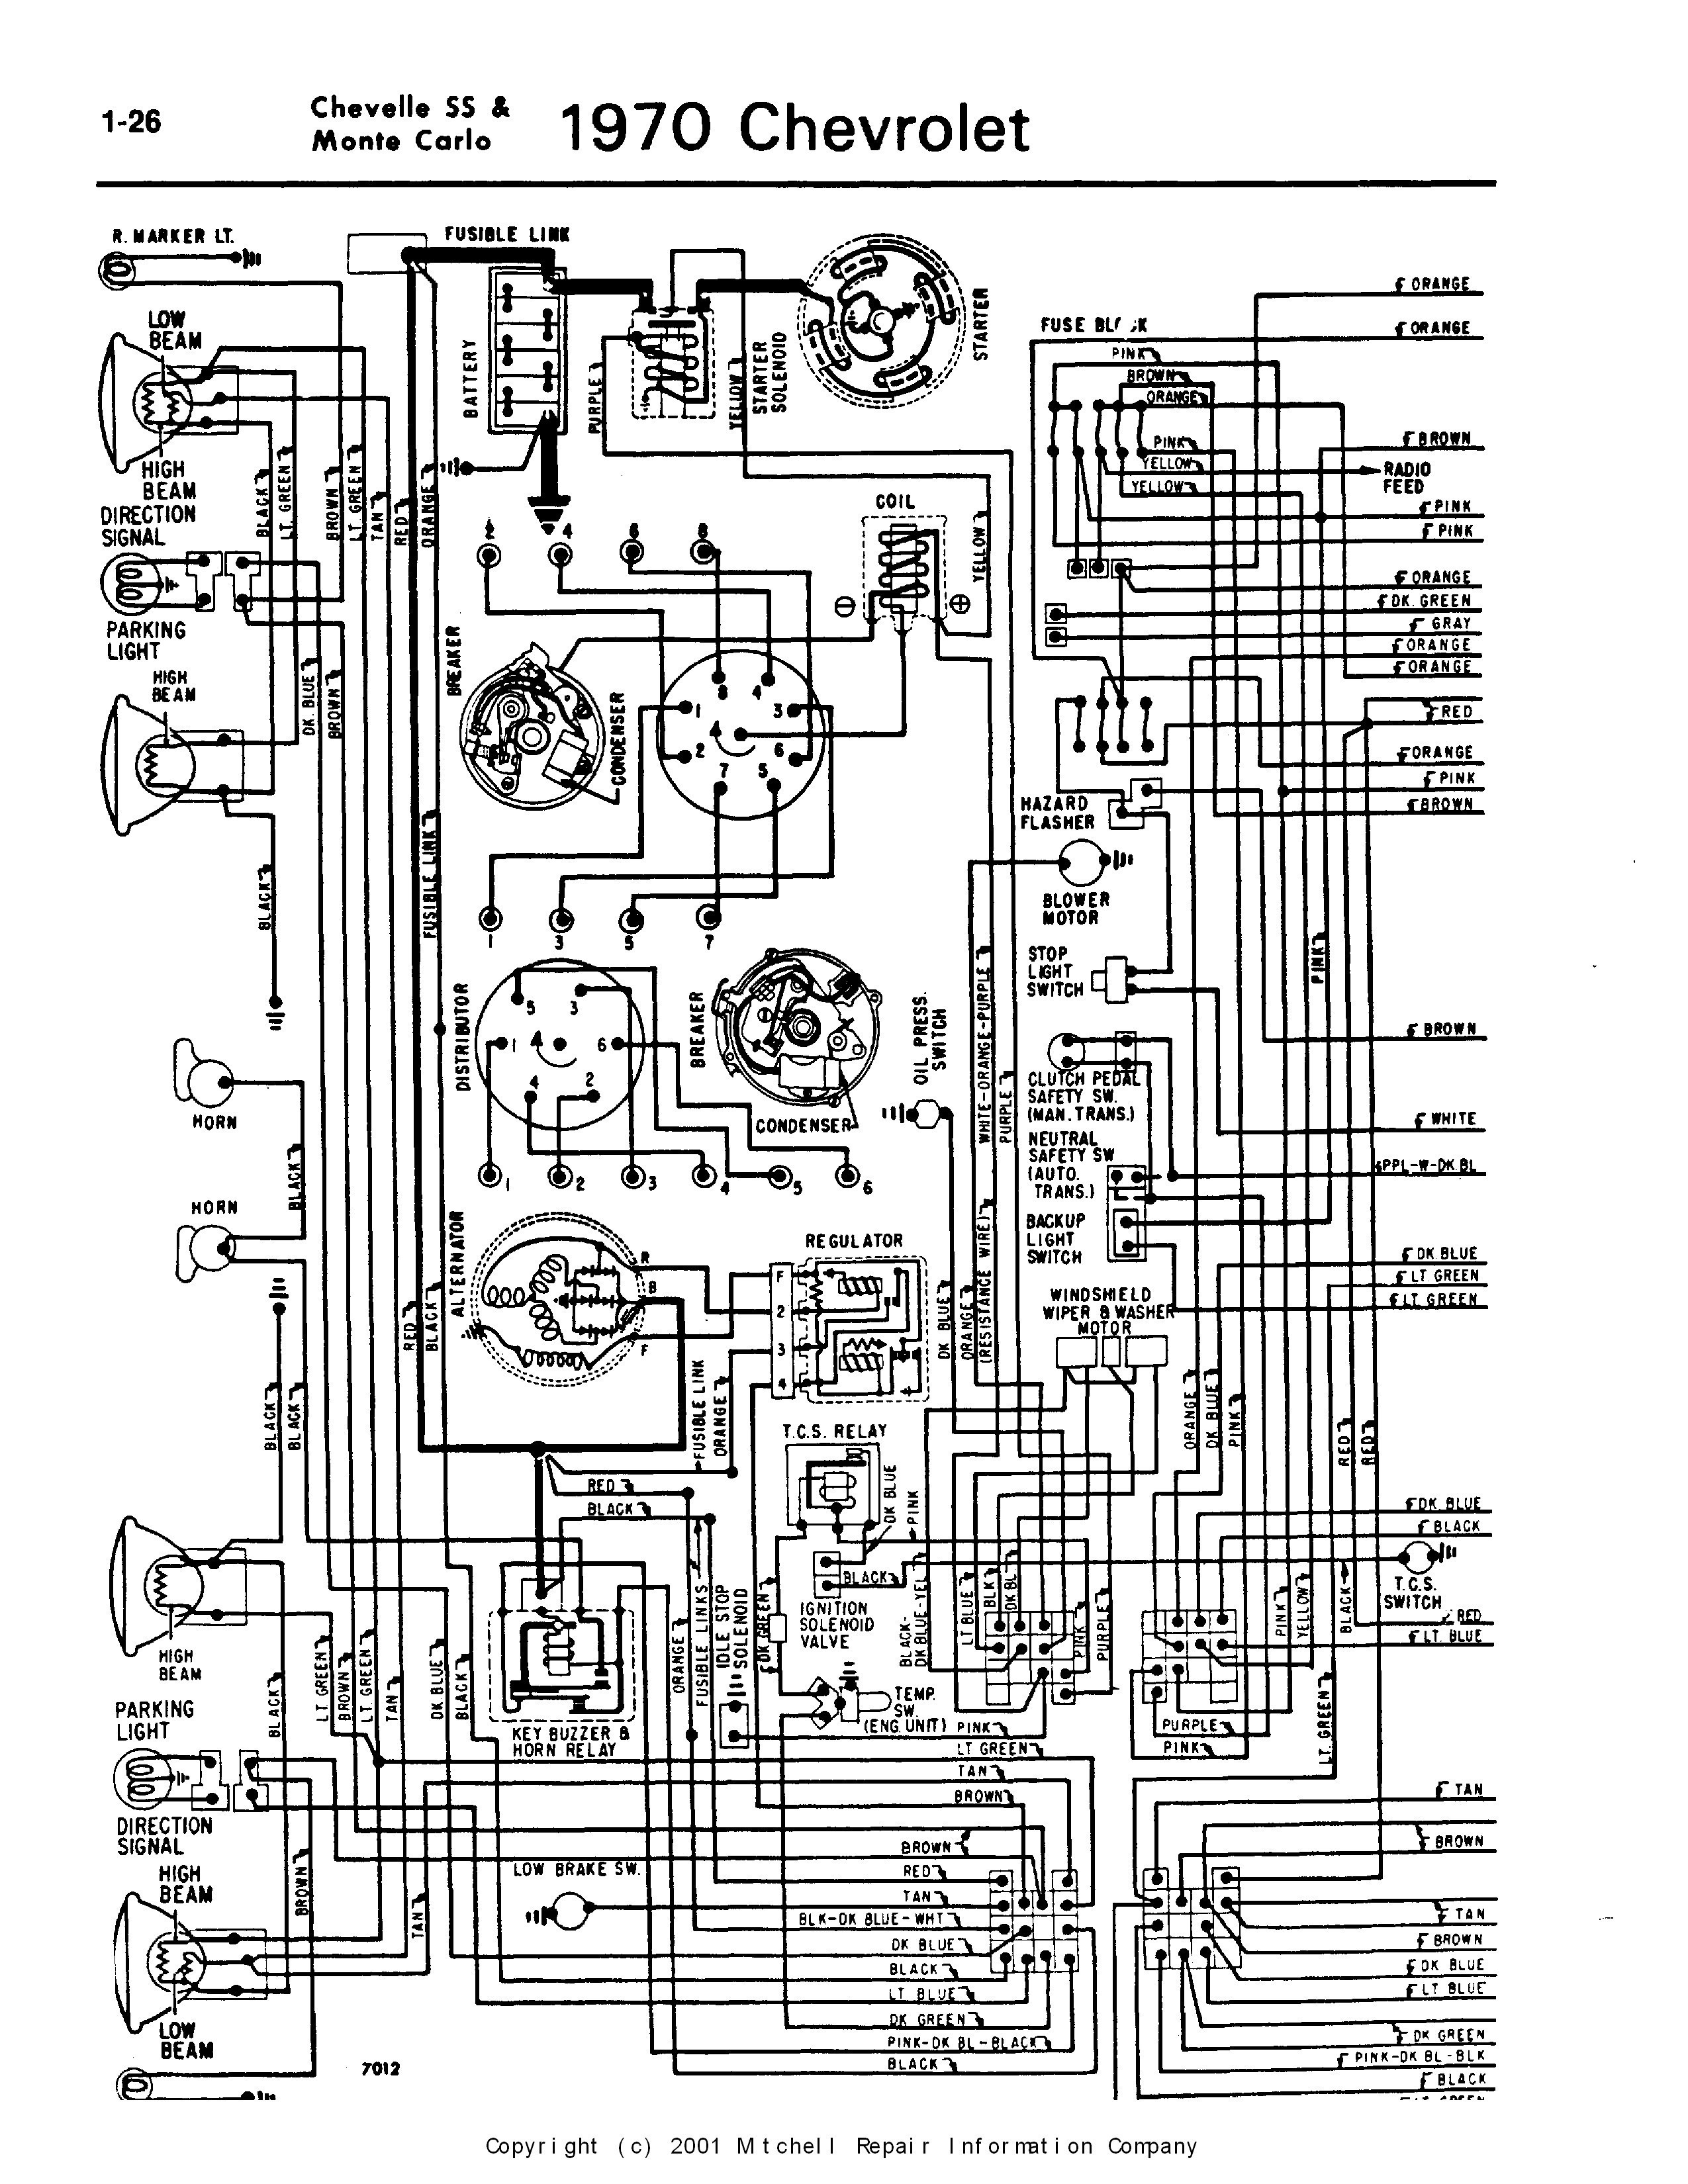 1969 Chevelle Wiring Diagram 70 Chevelle Starter Wiring Harness Diagram Worksheet and Wiring Of 1969 Chevelle Wiring Diagram